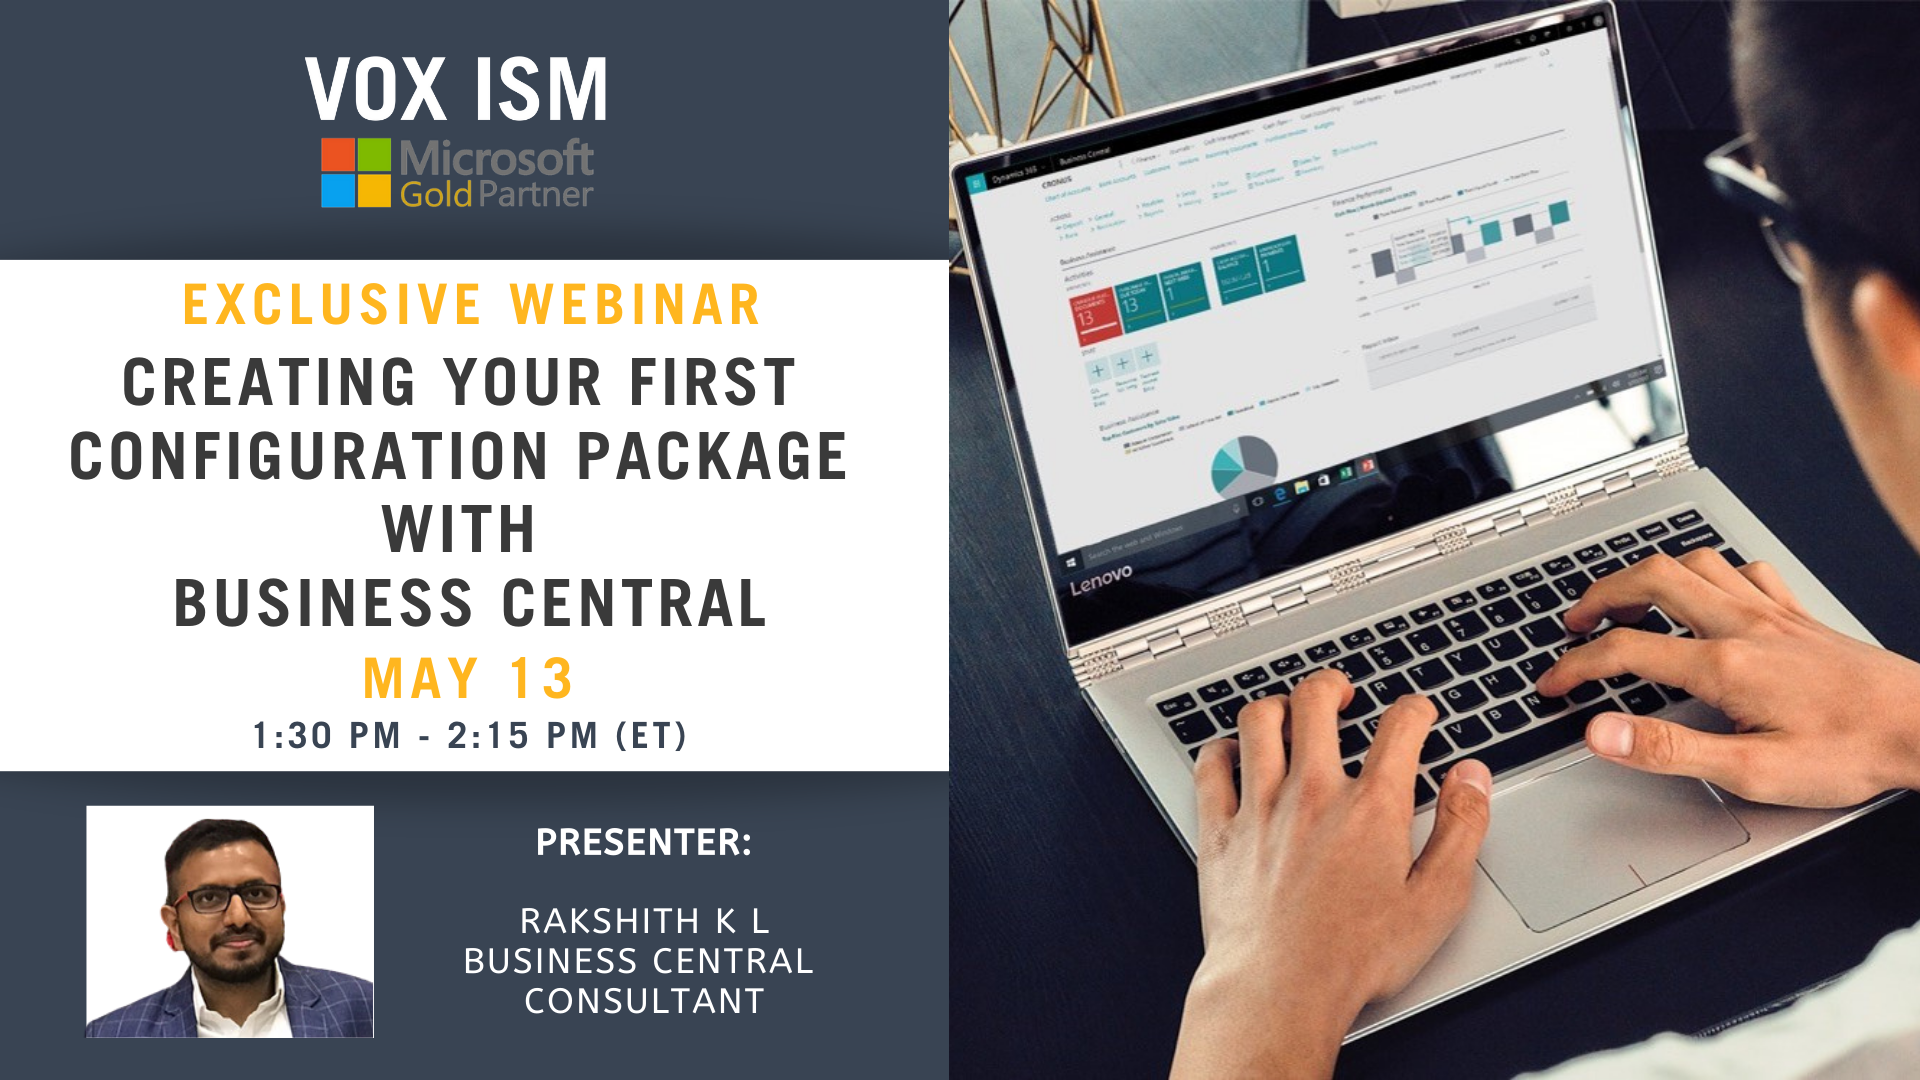 Creating your first configuration package with Business Central - May 13 - Webinar